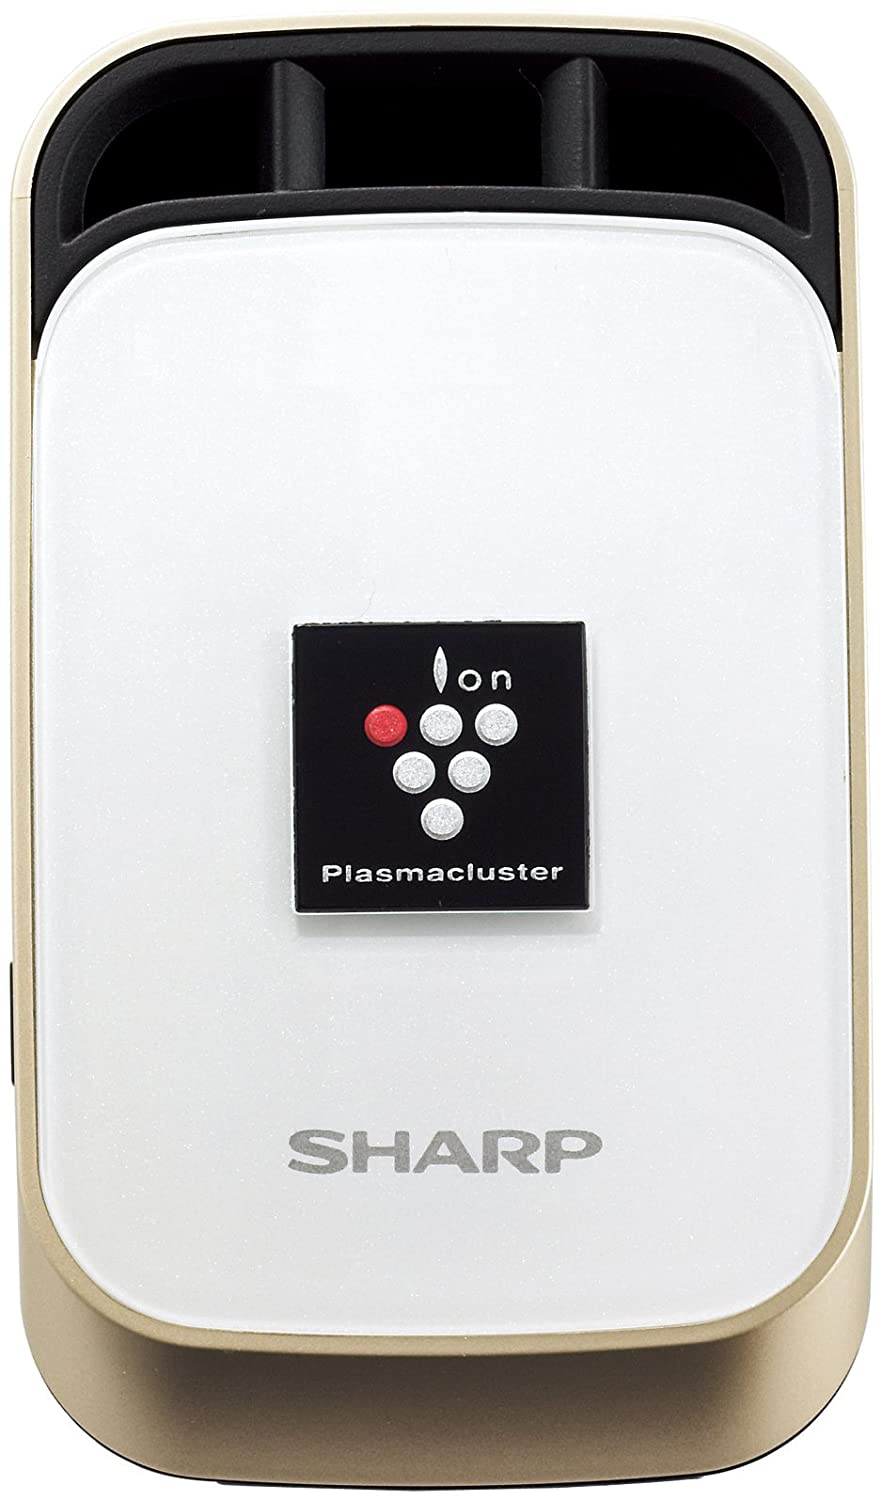 sharp plasmacluster. amazon.com: sharp plasmacluster air ionizer ig-fc1-w white | for car (japanese import): health \u0026 personal care sharp a